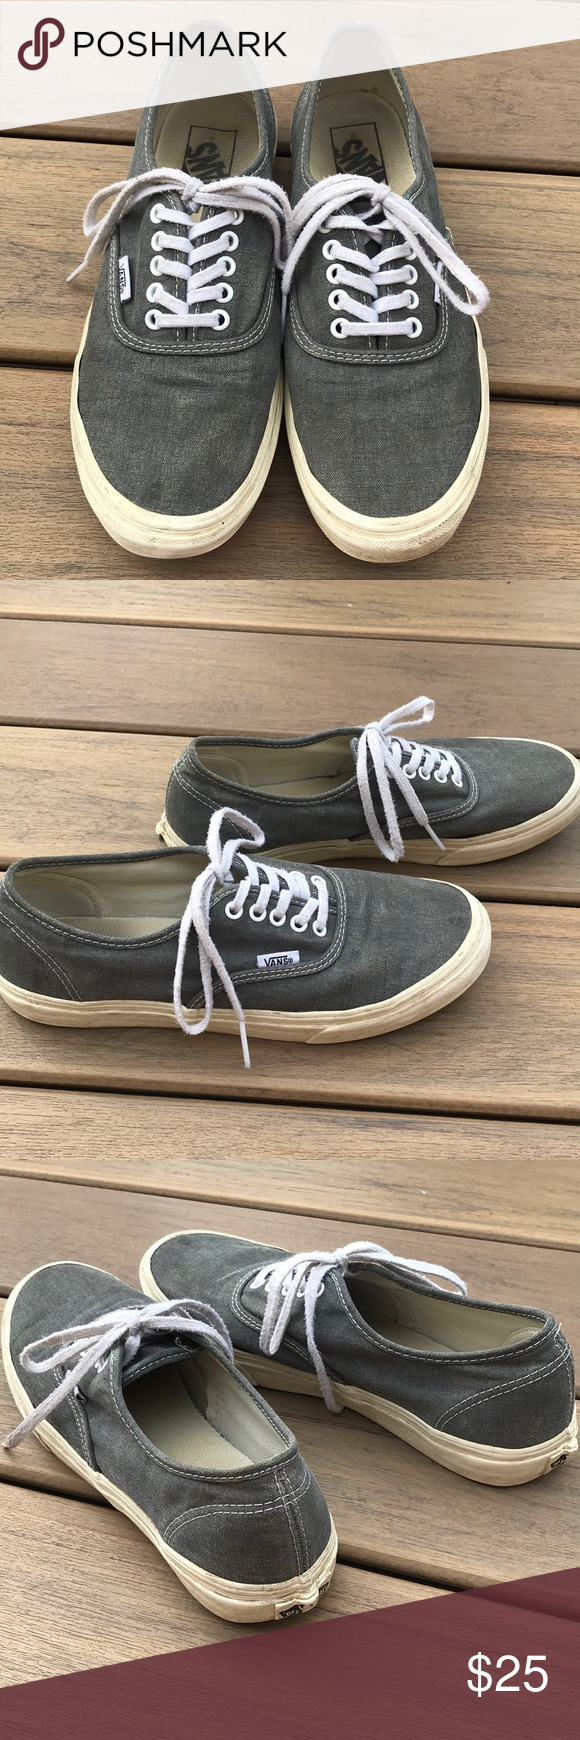 8c0484f4d7 Vans size 8 in Women s